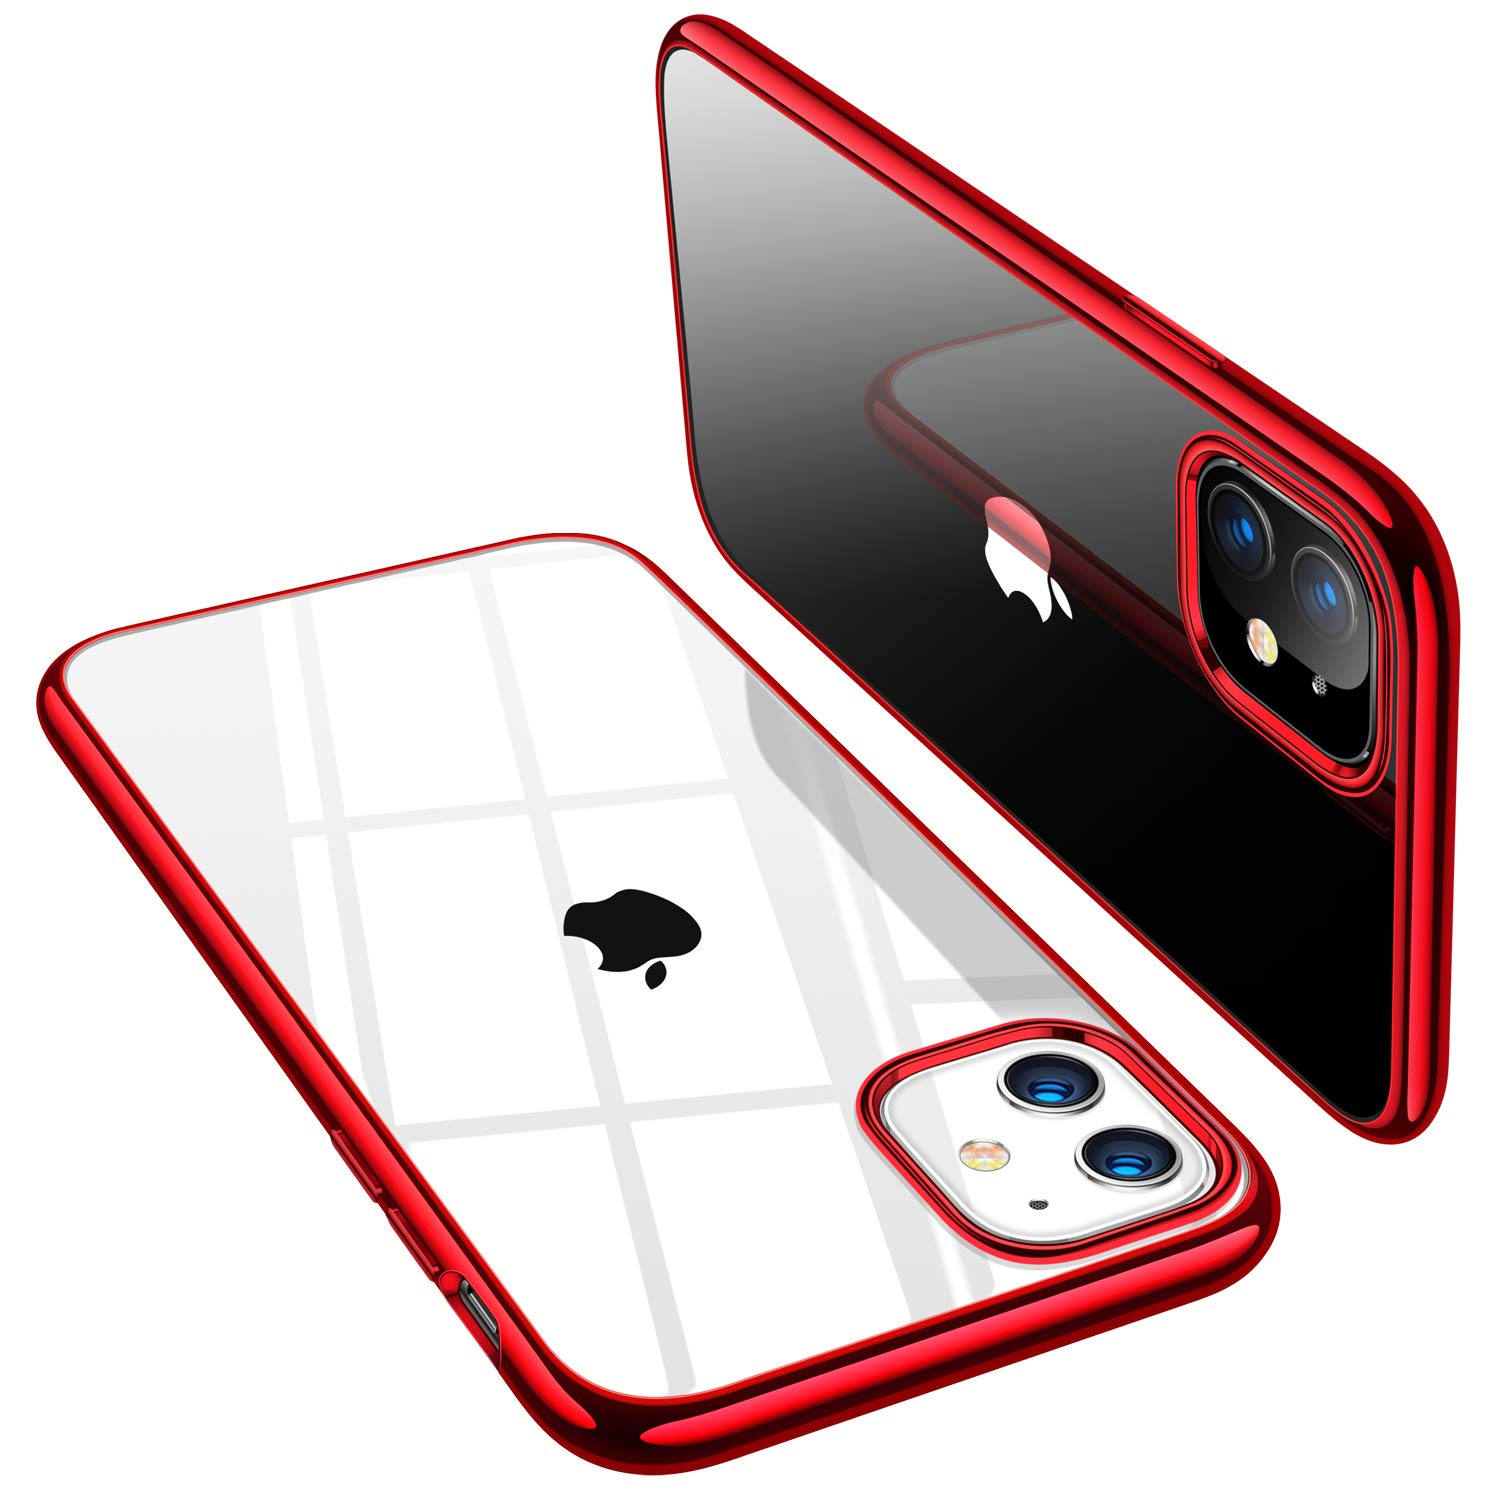 TORRAS Crystal Clear iPhone 11 Case, [Anti-Yellow] Thin Slim [Anti-Scratch] Shockproof Soft TPU Cover Case for iPhone 11 6.1 inch, Glossy Red